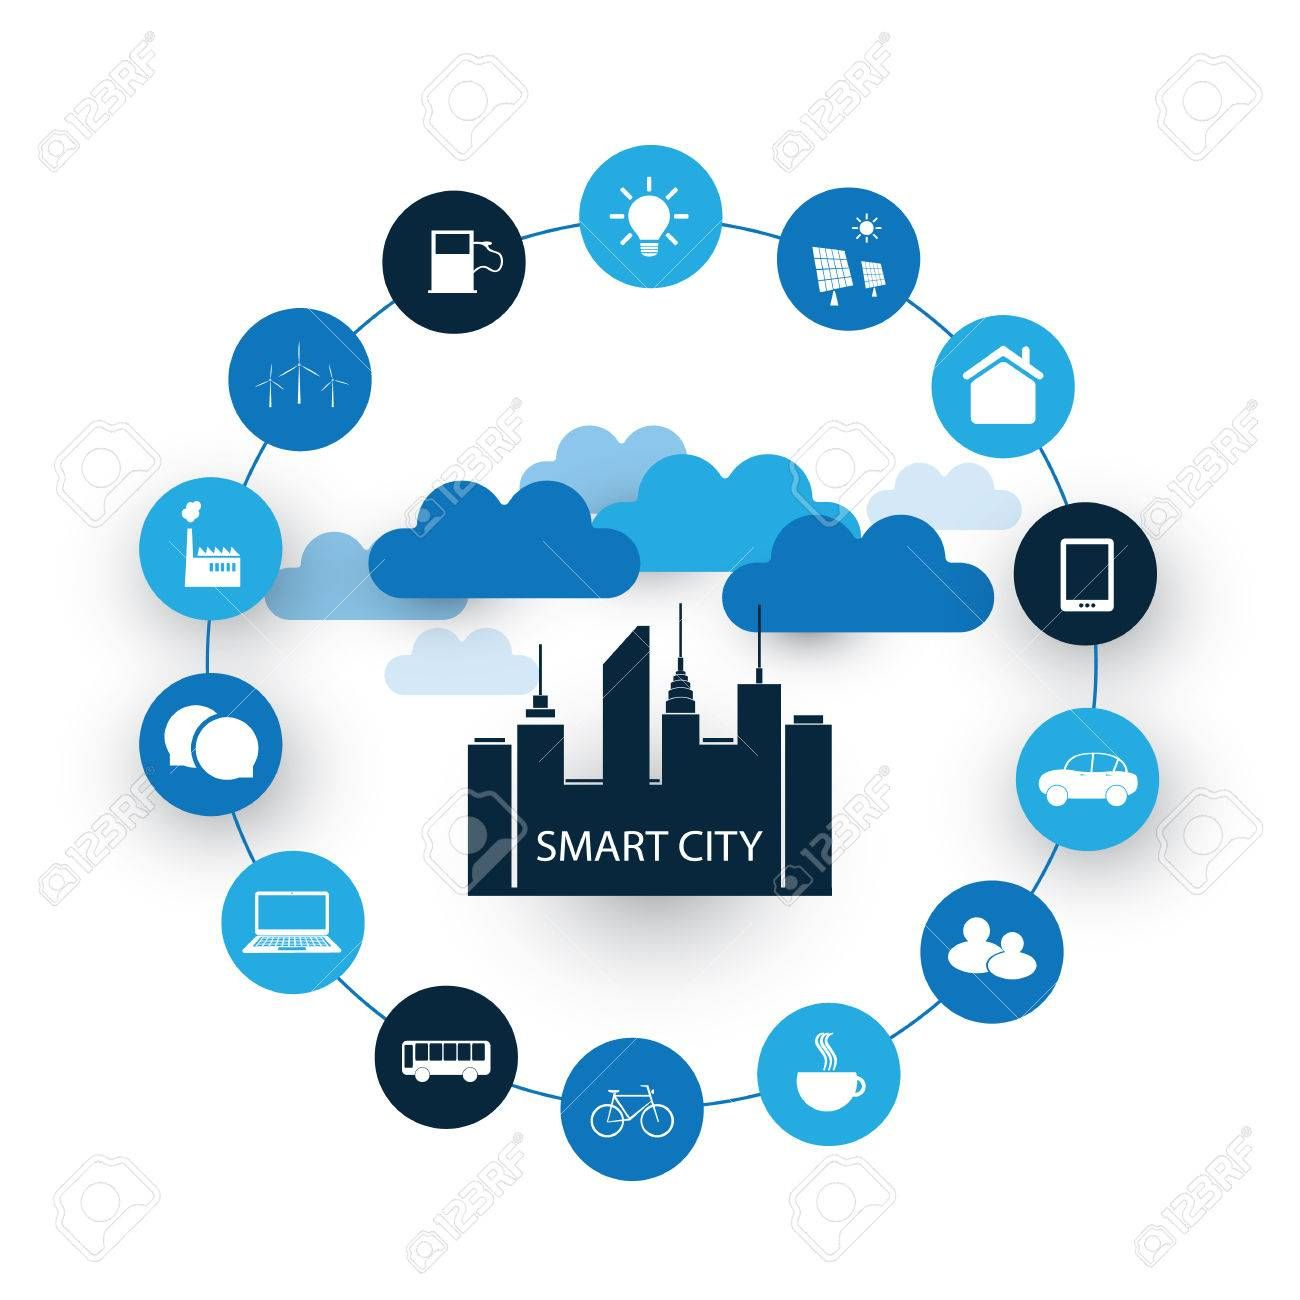 58298491 Smart City Design Concept With Icons Jpg 1300 1300 Smart City City Design Graphic Design Photography